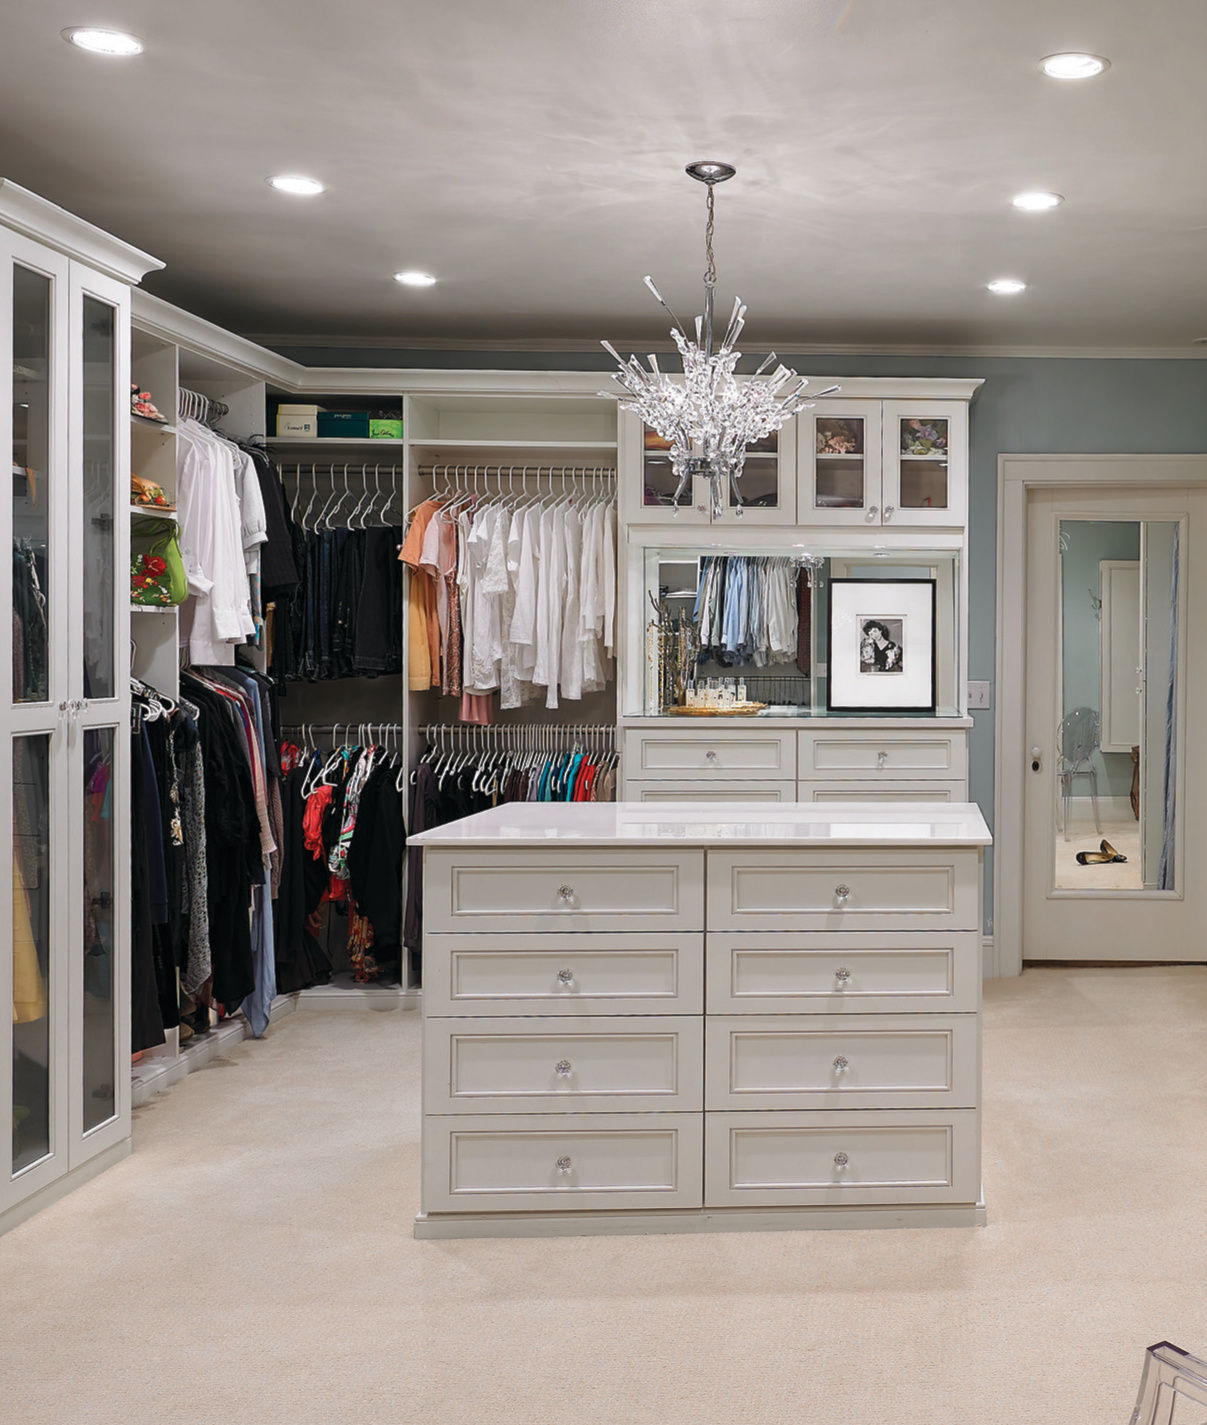 From simple storage solutions to spectacular room improvements closet factory can enhance your closet office